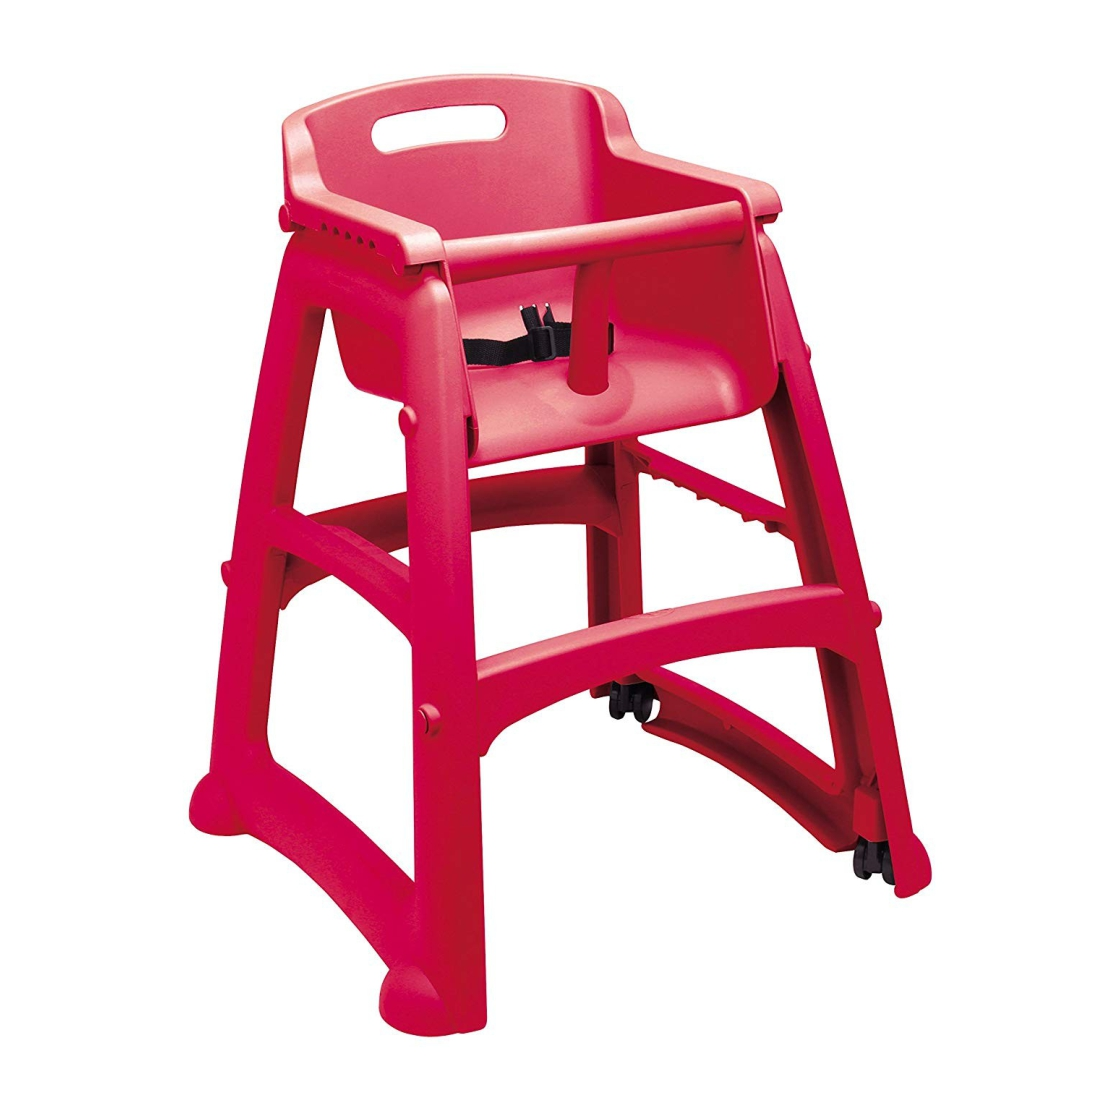 Rubbermaid High Chair - Red